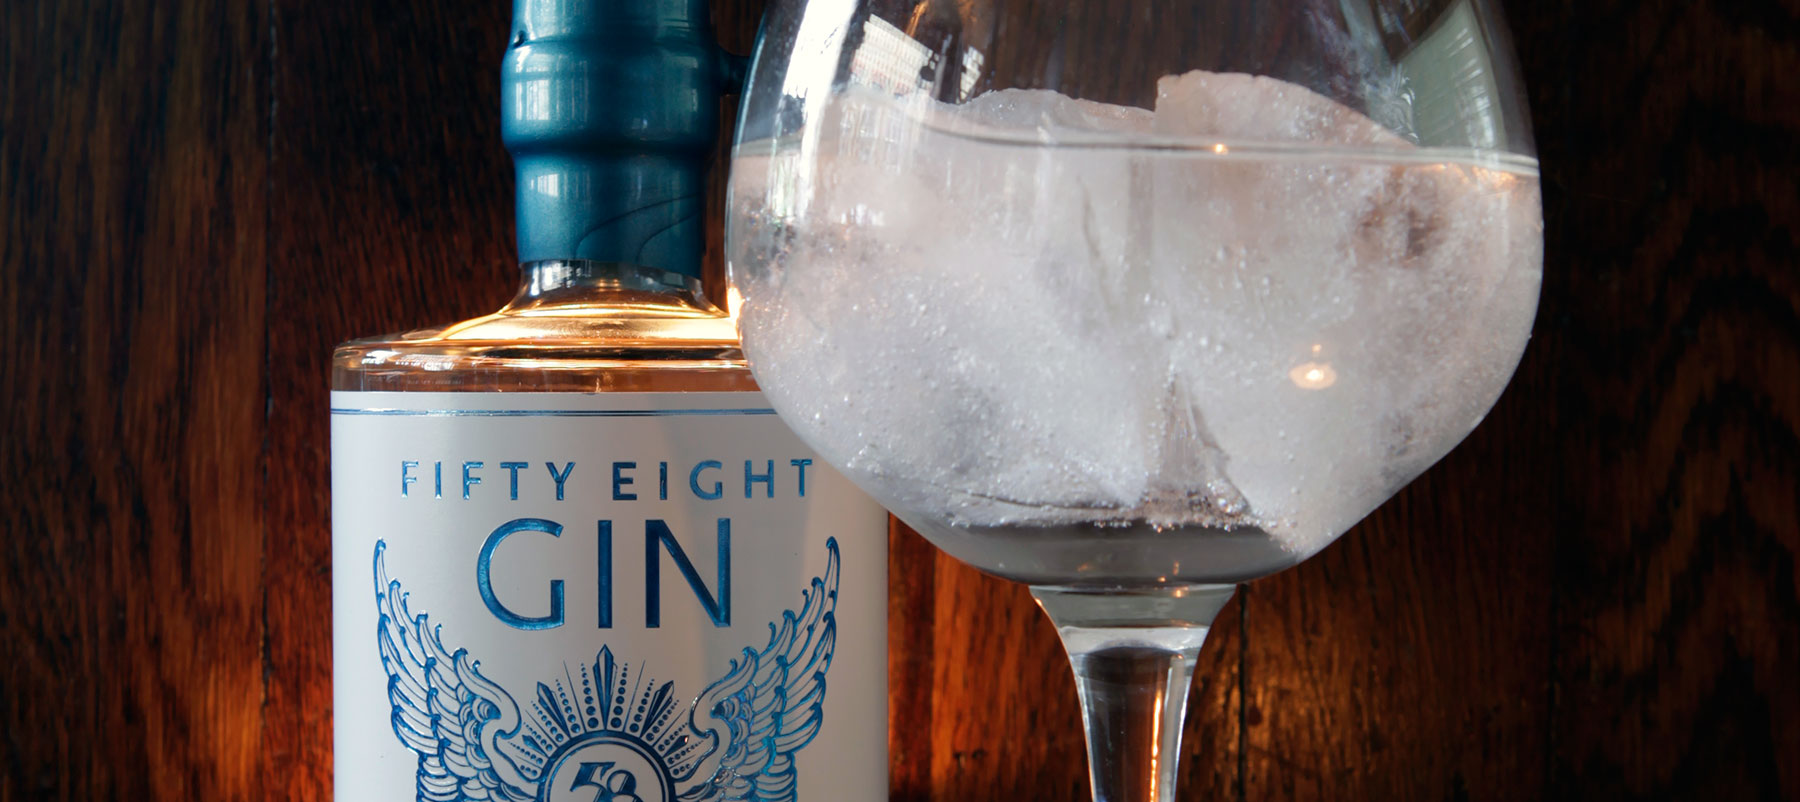 fifty-eight gin